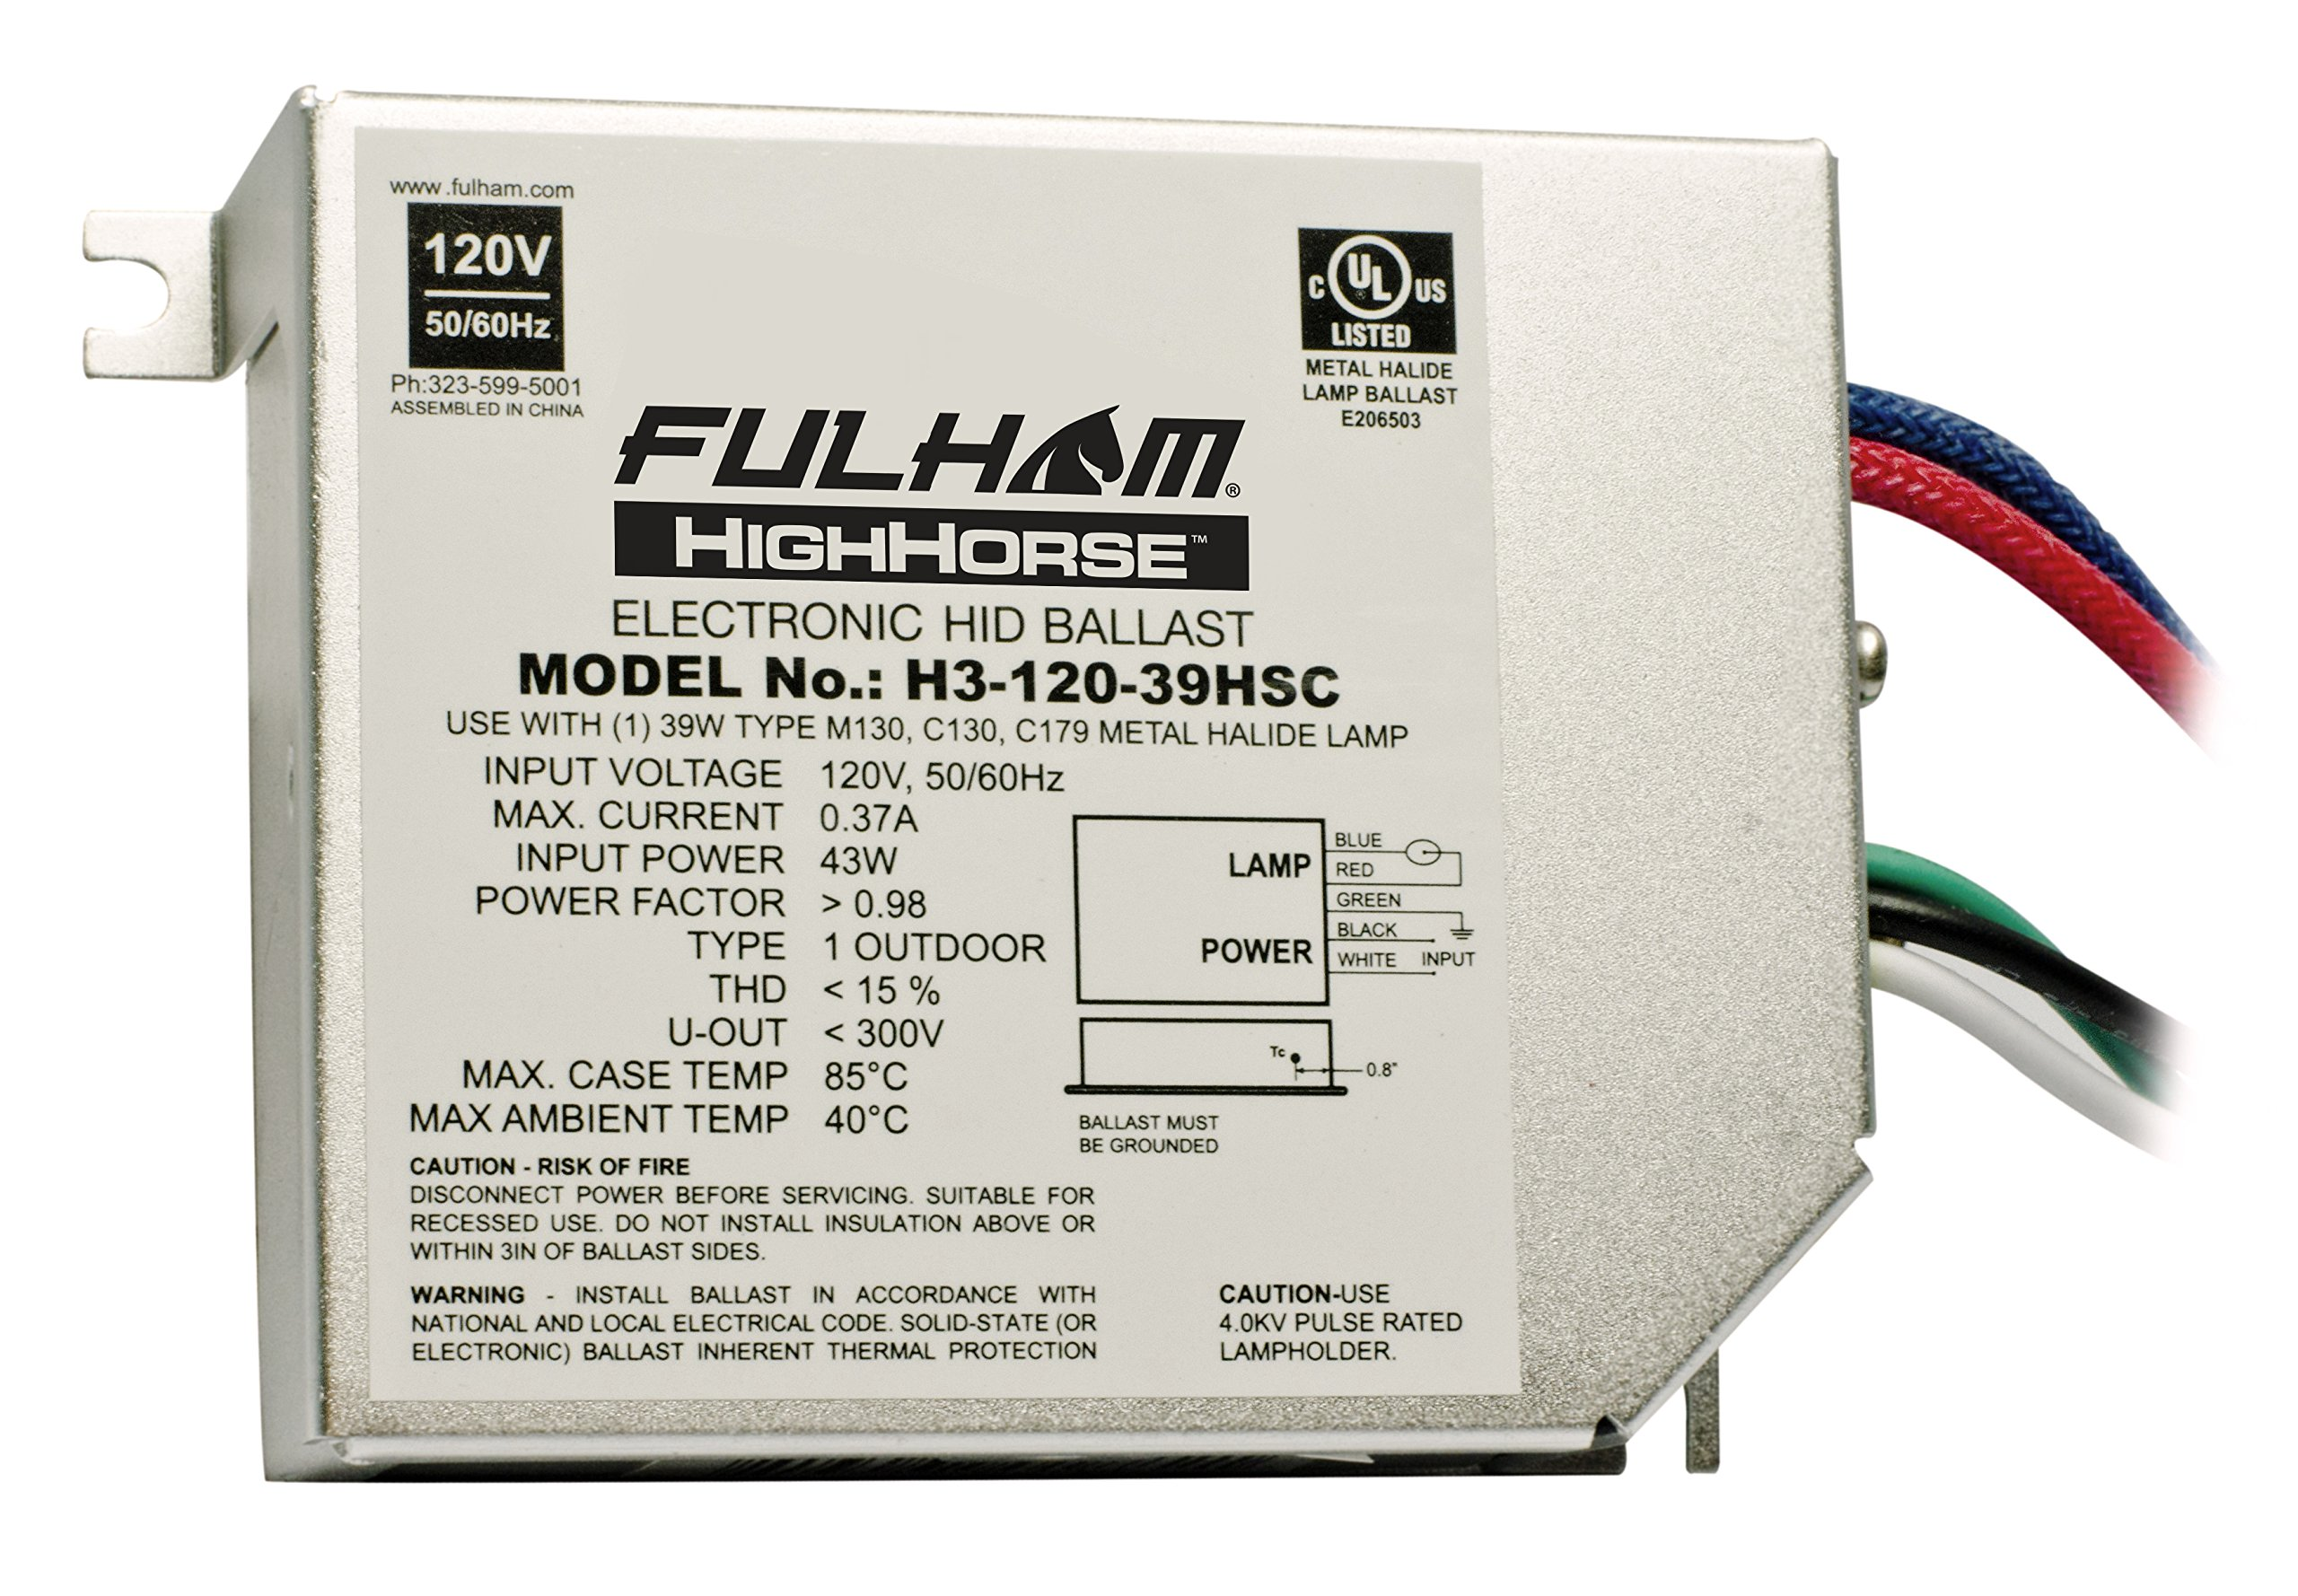 Fulham H3-120-39HSC HighHorse Low Frequency Electronic HID Ballast, 39-watt